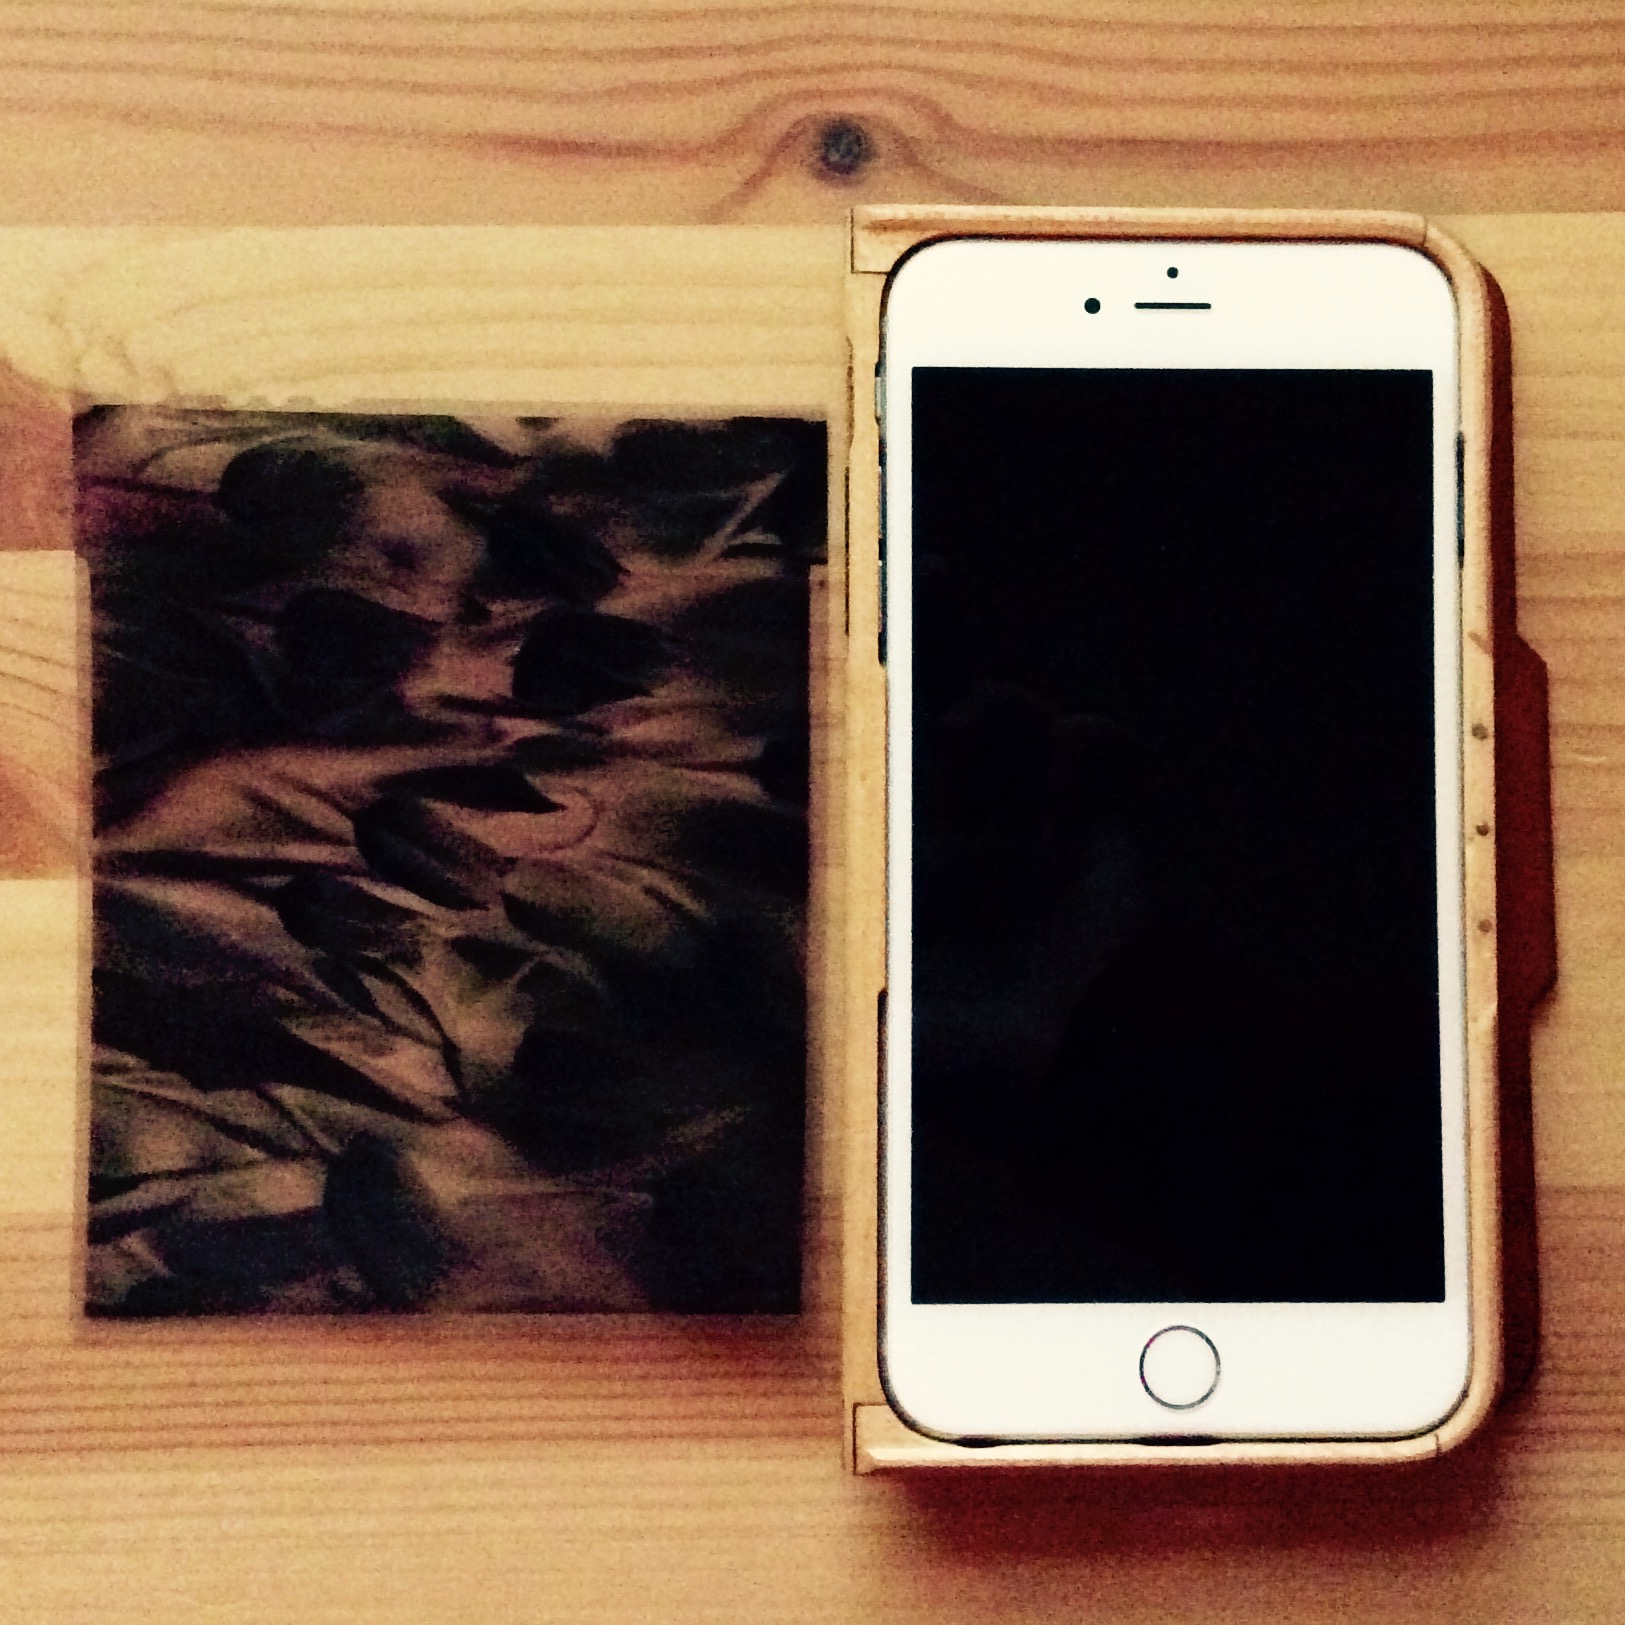 The large format negative vs the iPhone 6 plus